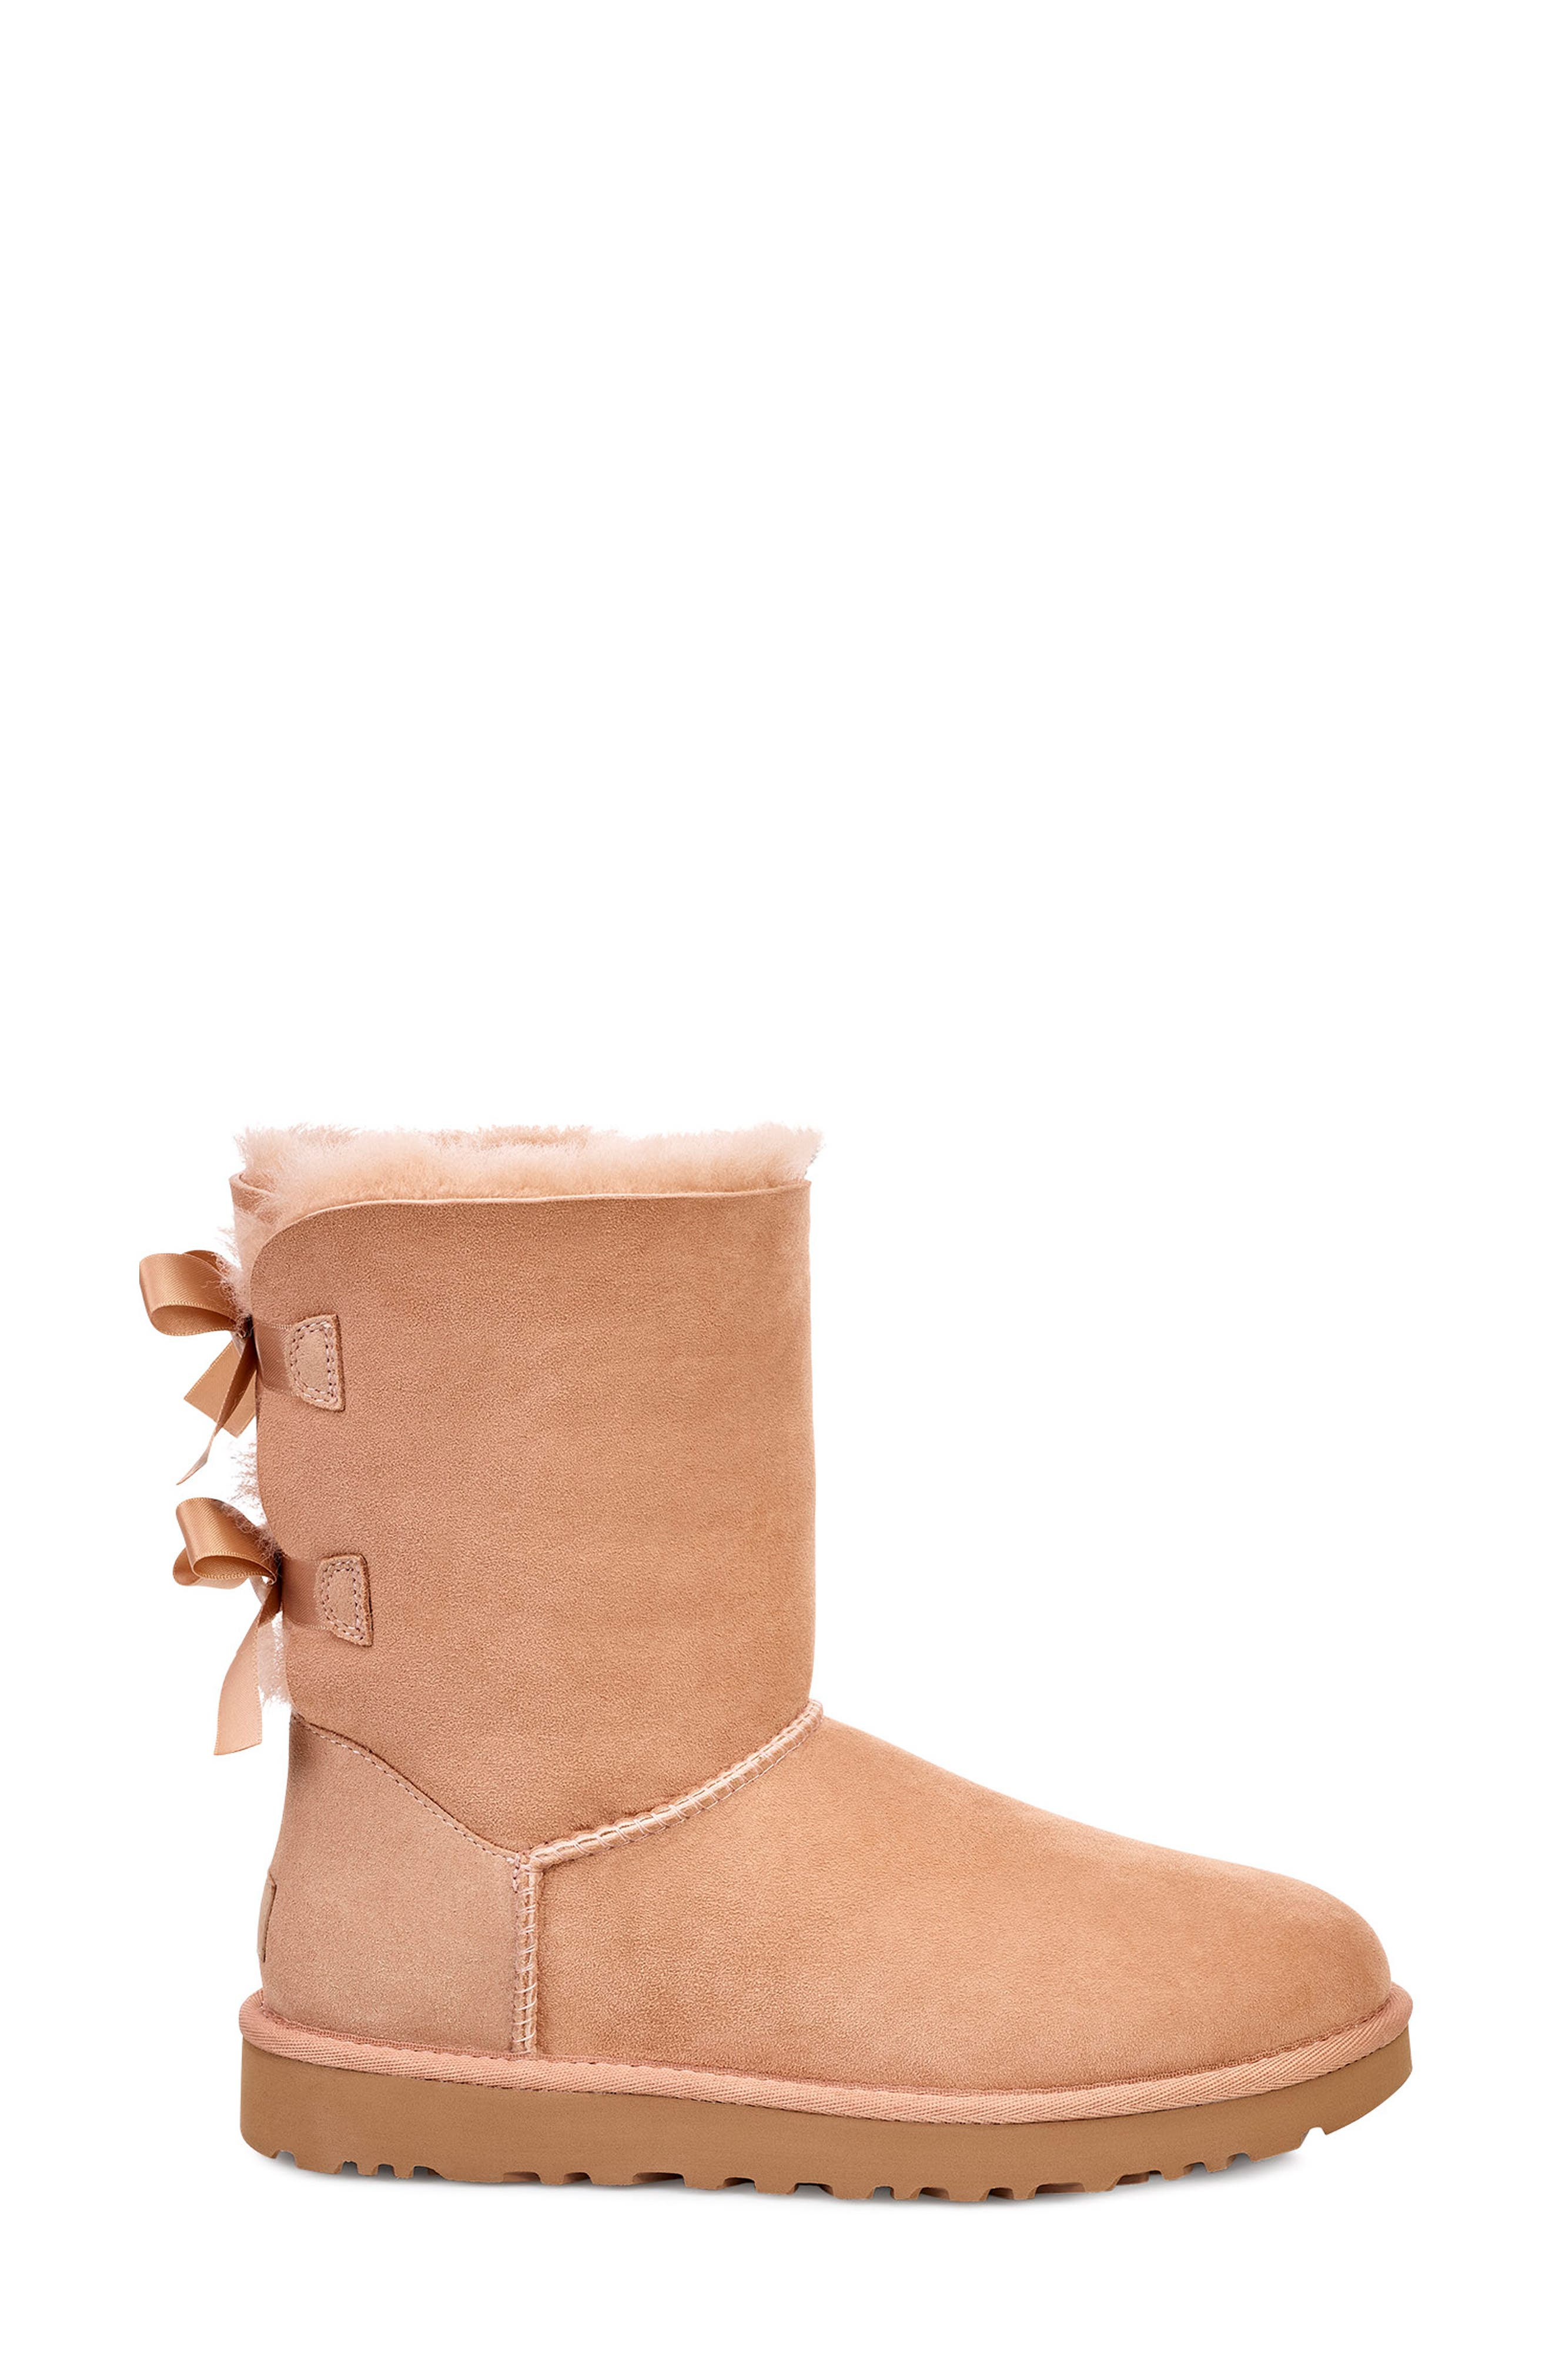 ugg bailey bow ii genuine shearling boot women nordstrom rh shop nordstrom com